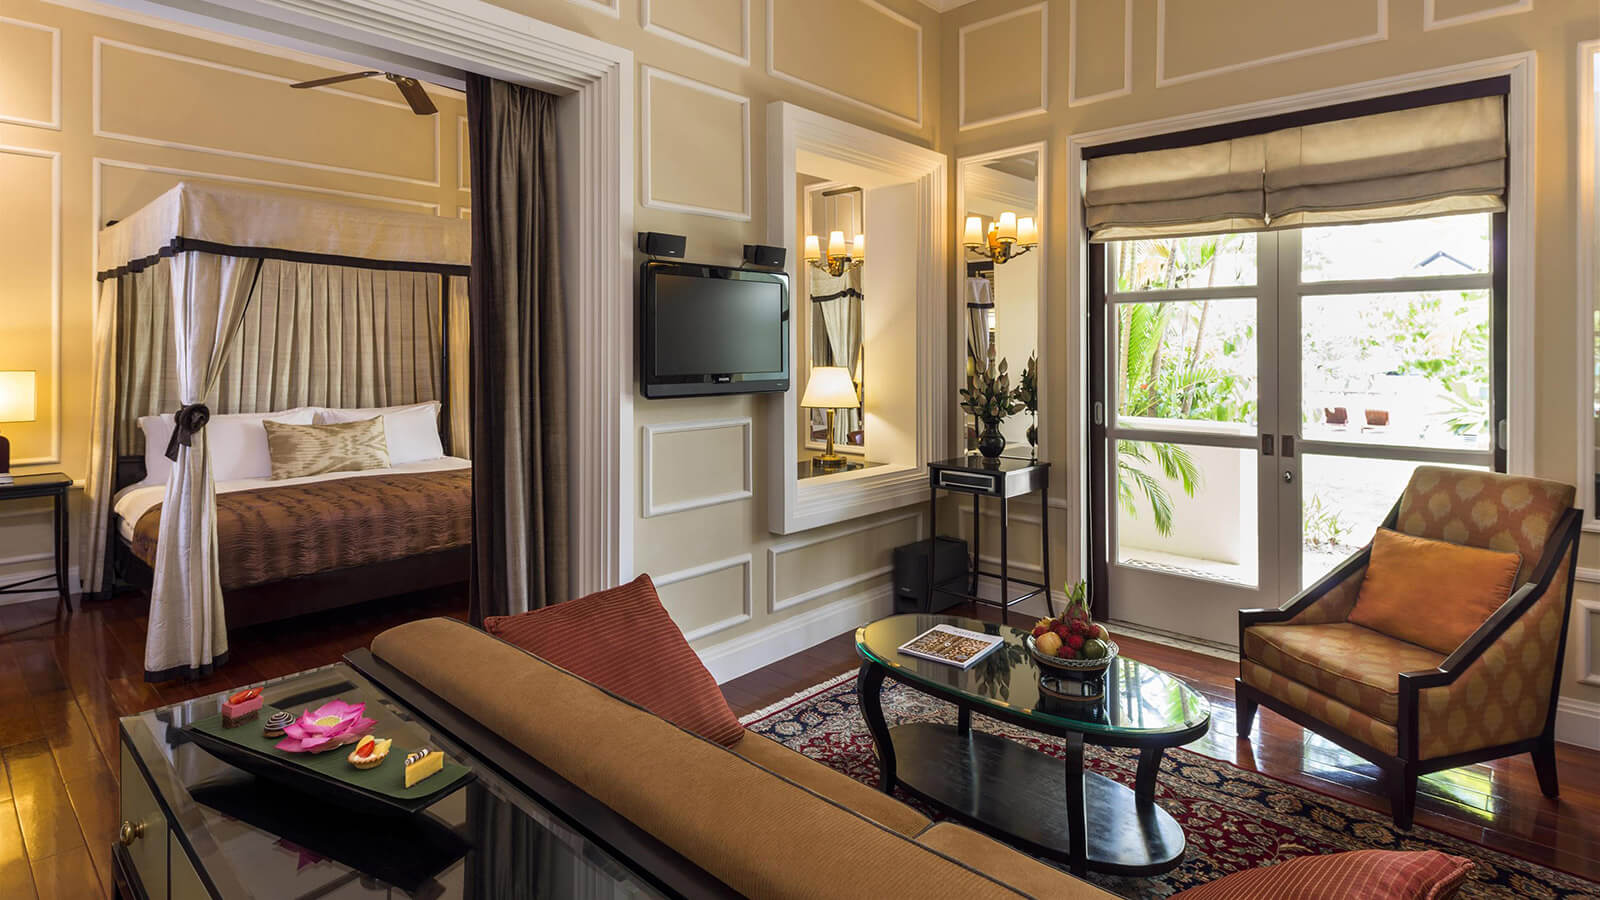 Raffles Grand Hotel d'Angkor reopens following renovations